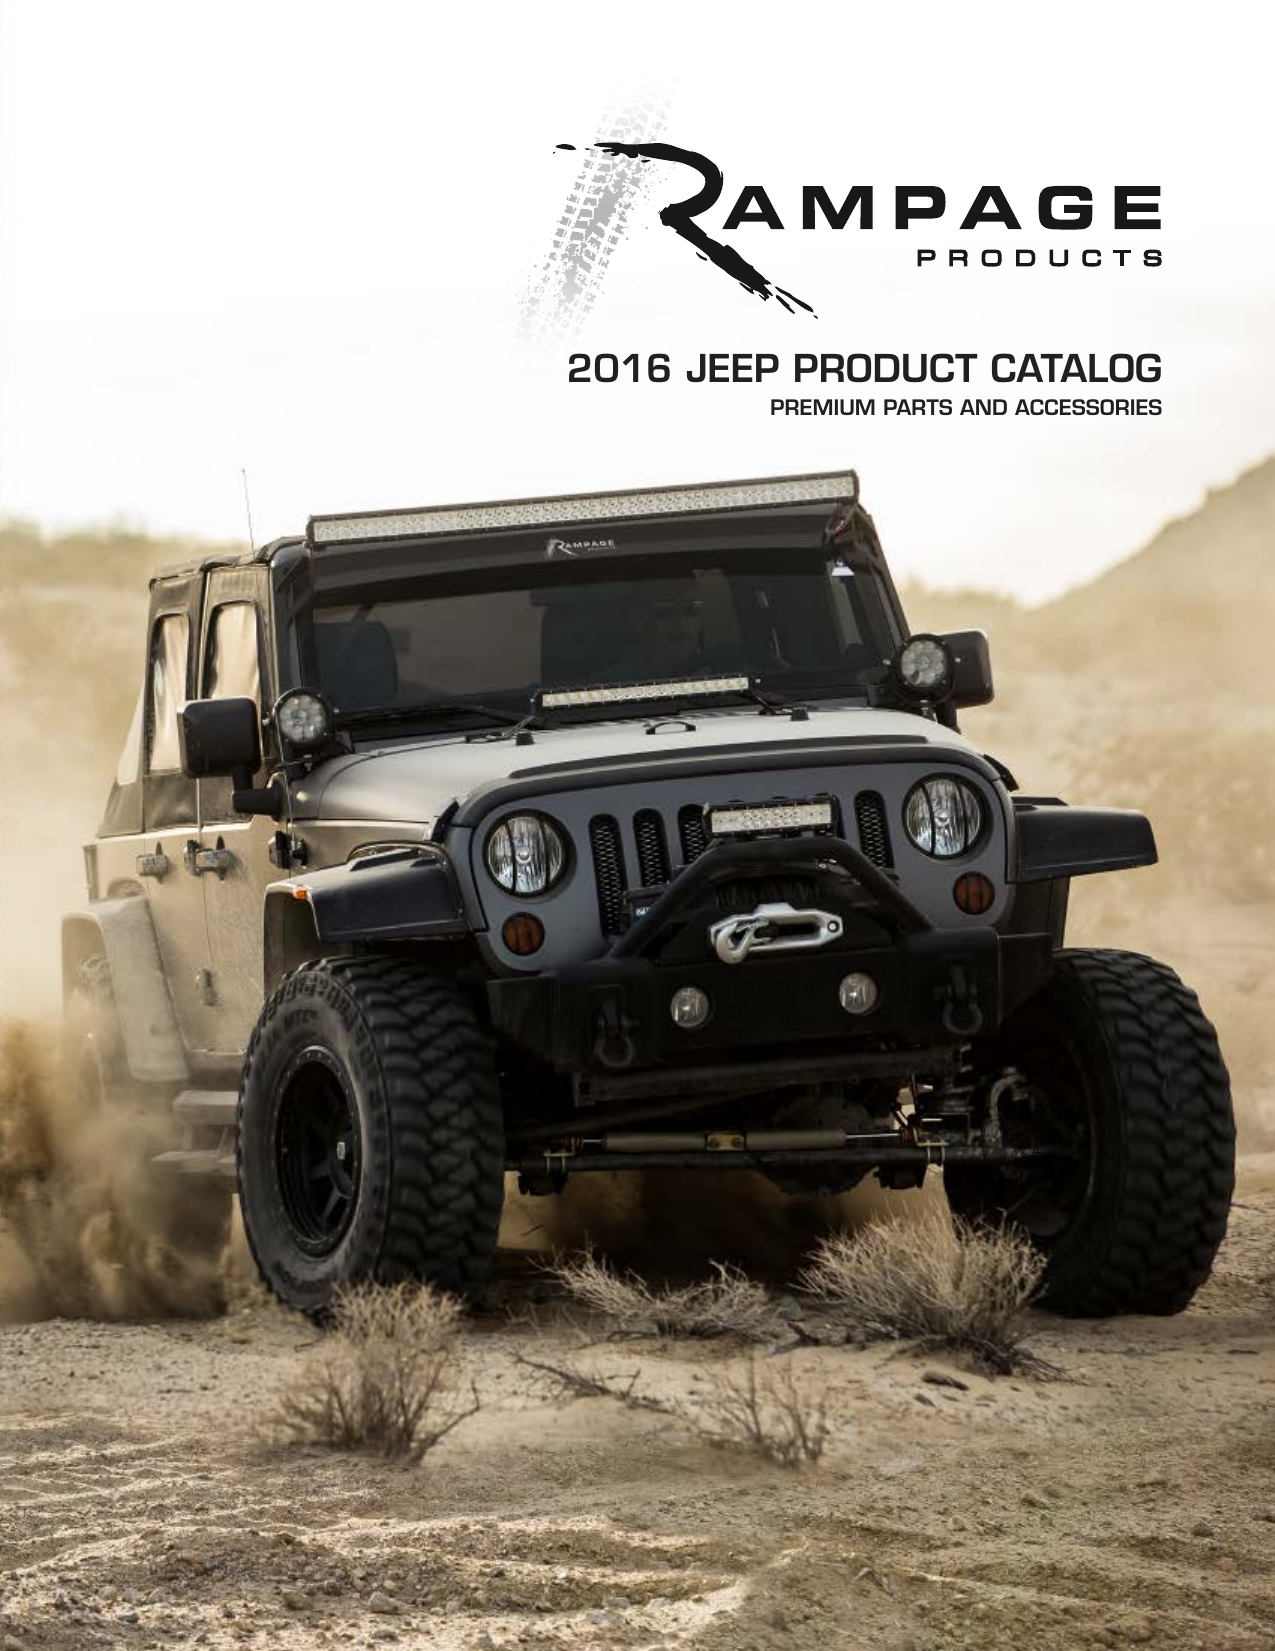 Rampage Full Cab Enclosure /& Tonneau Cover Spice 92-95 Jeep Wrangler YJ 993017